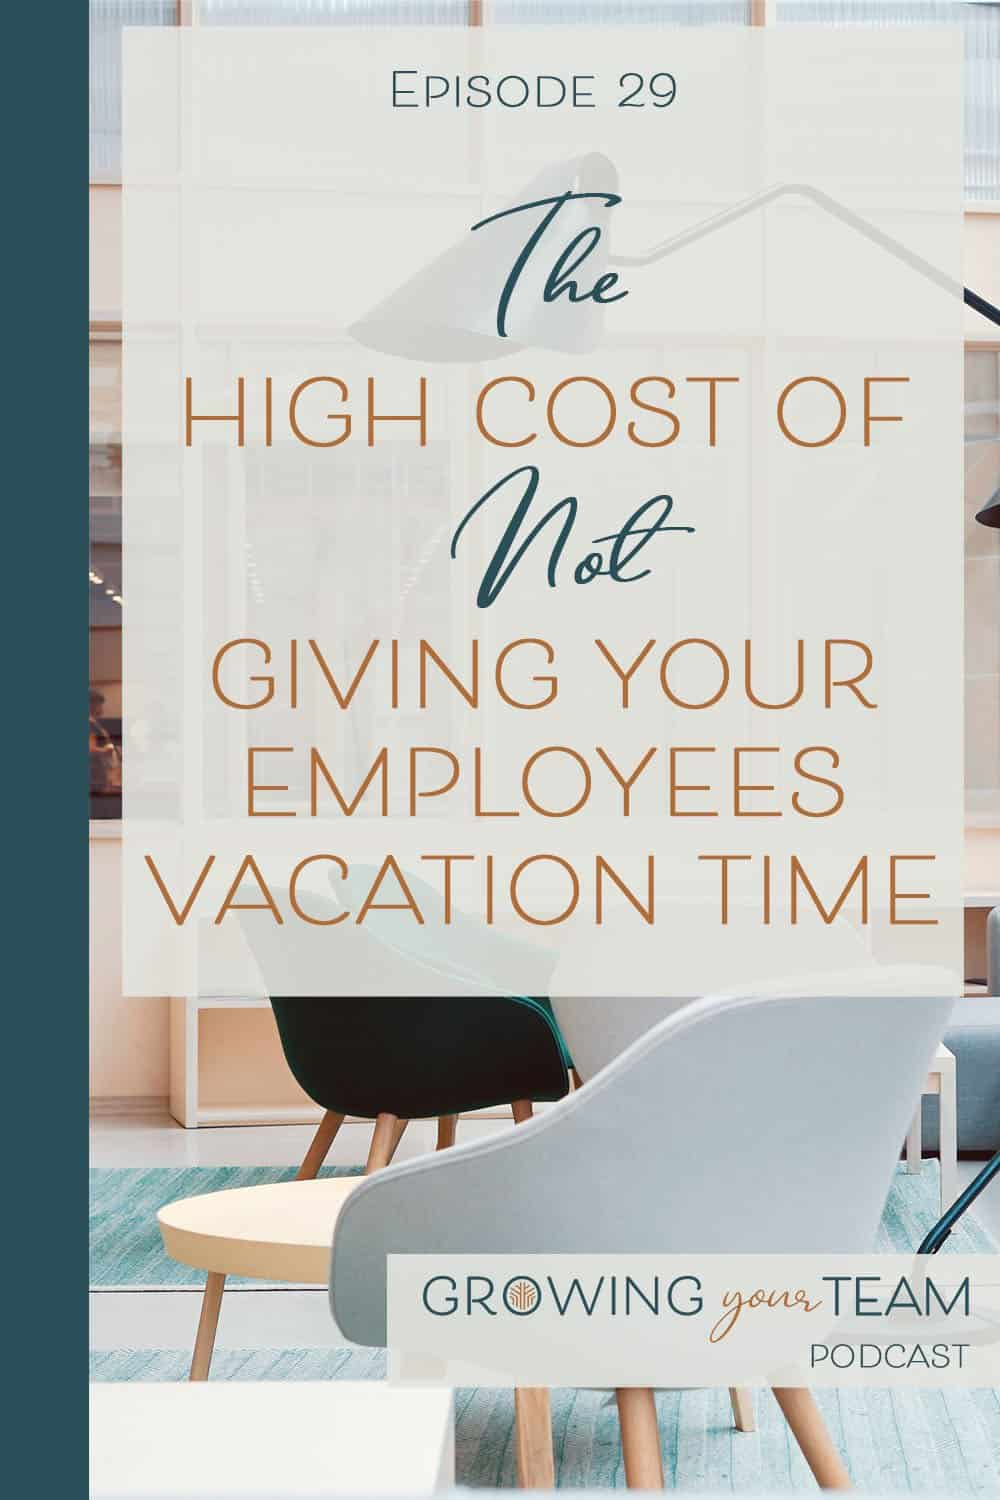 Giving Employees Vacation Time, Growing You Team Podcast, Jamie Van Cuyk, Small Business